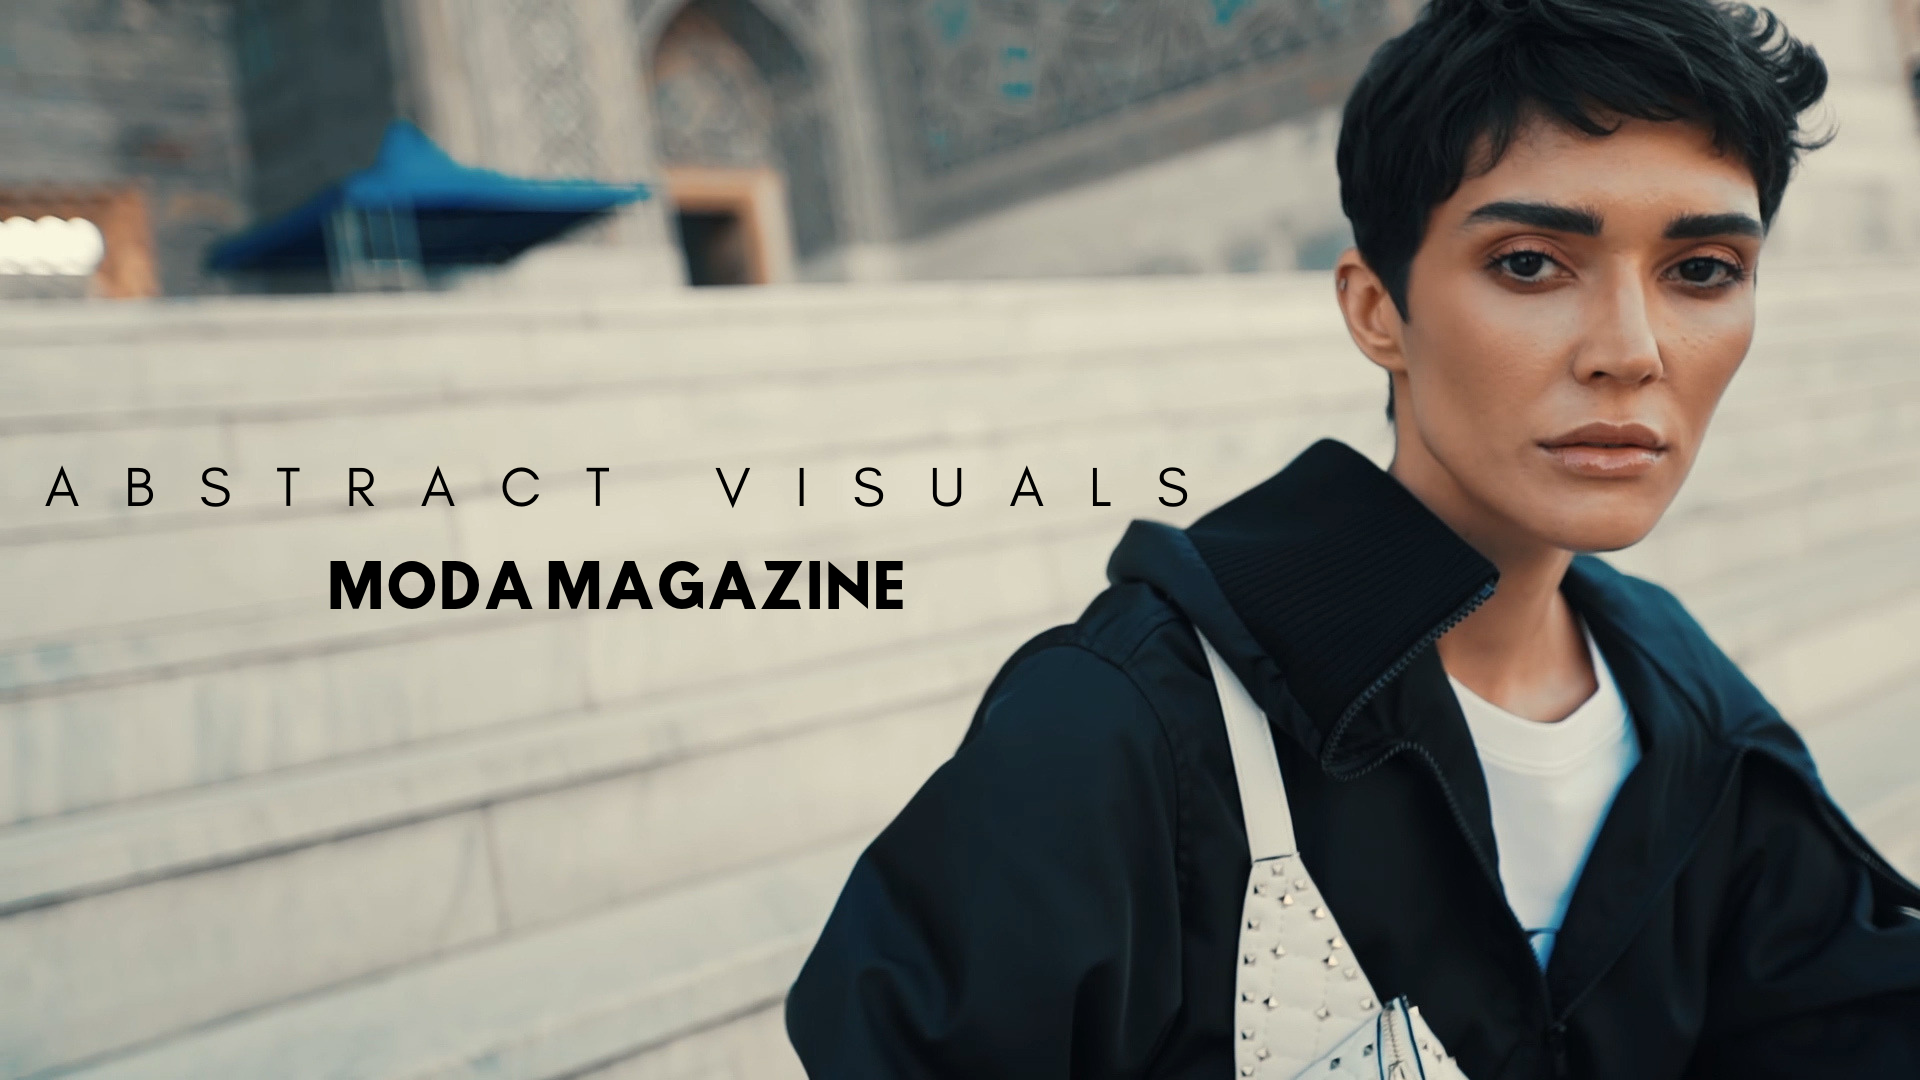 Moda Magazine Promotional Video